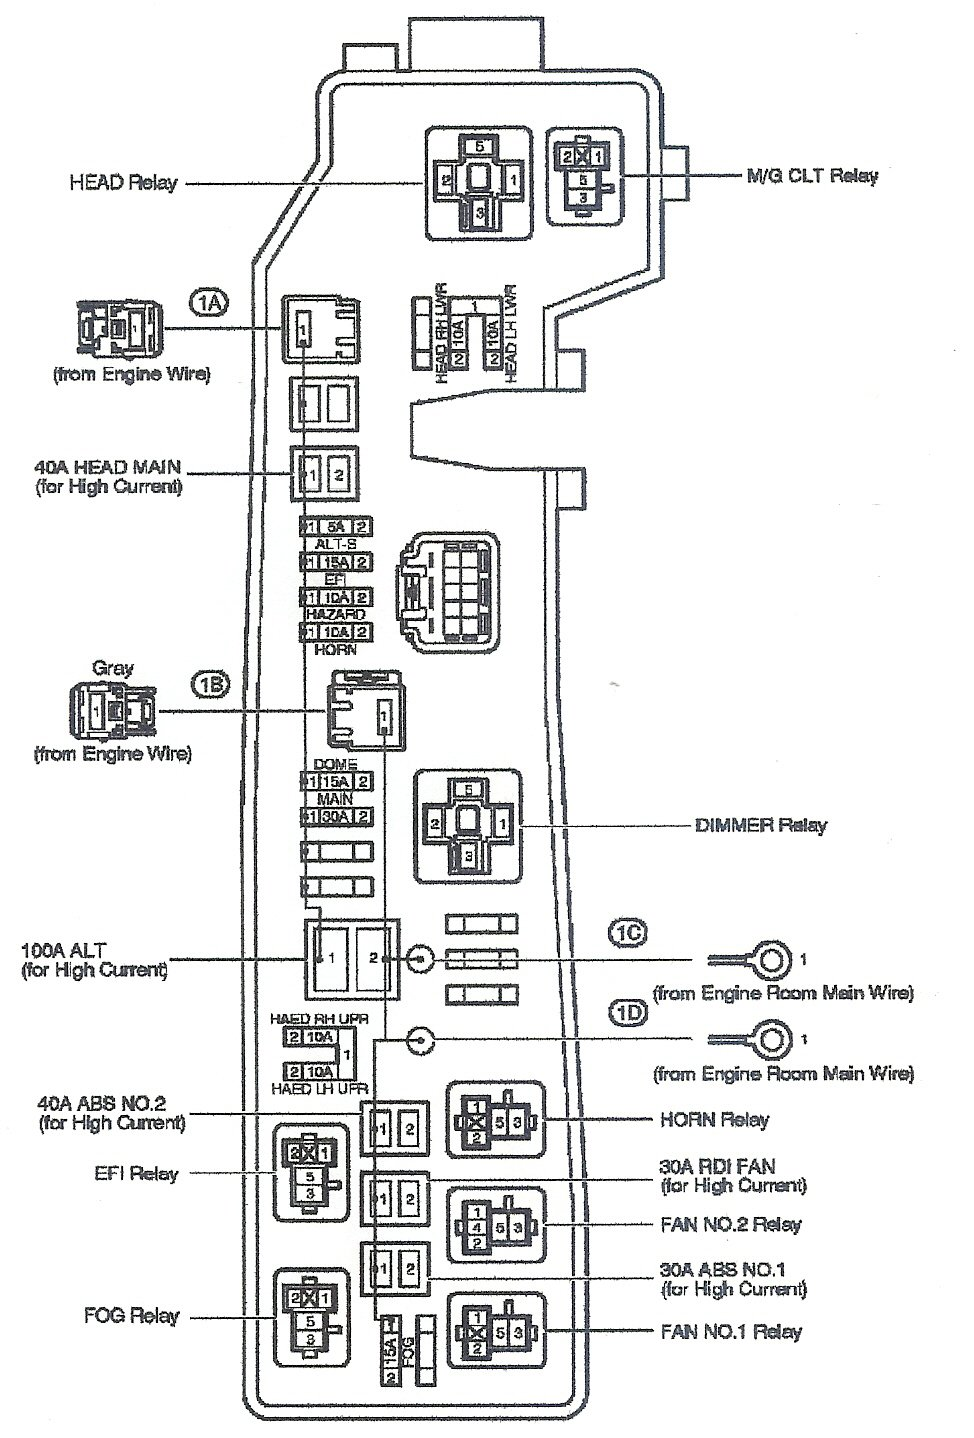 2005 Toyota Corolla Fuel Pump Wiring Diagram